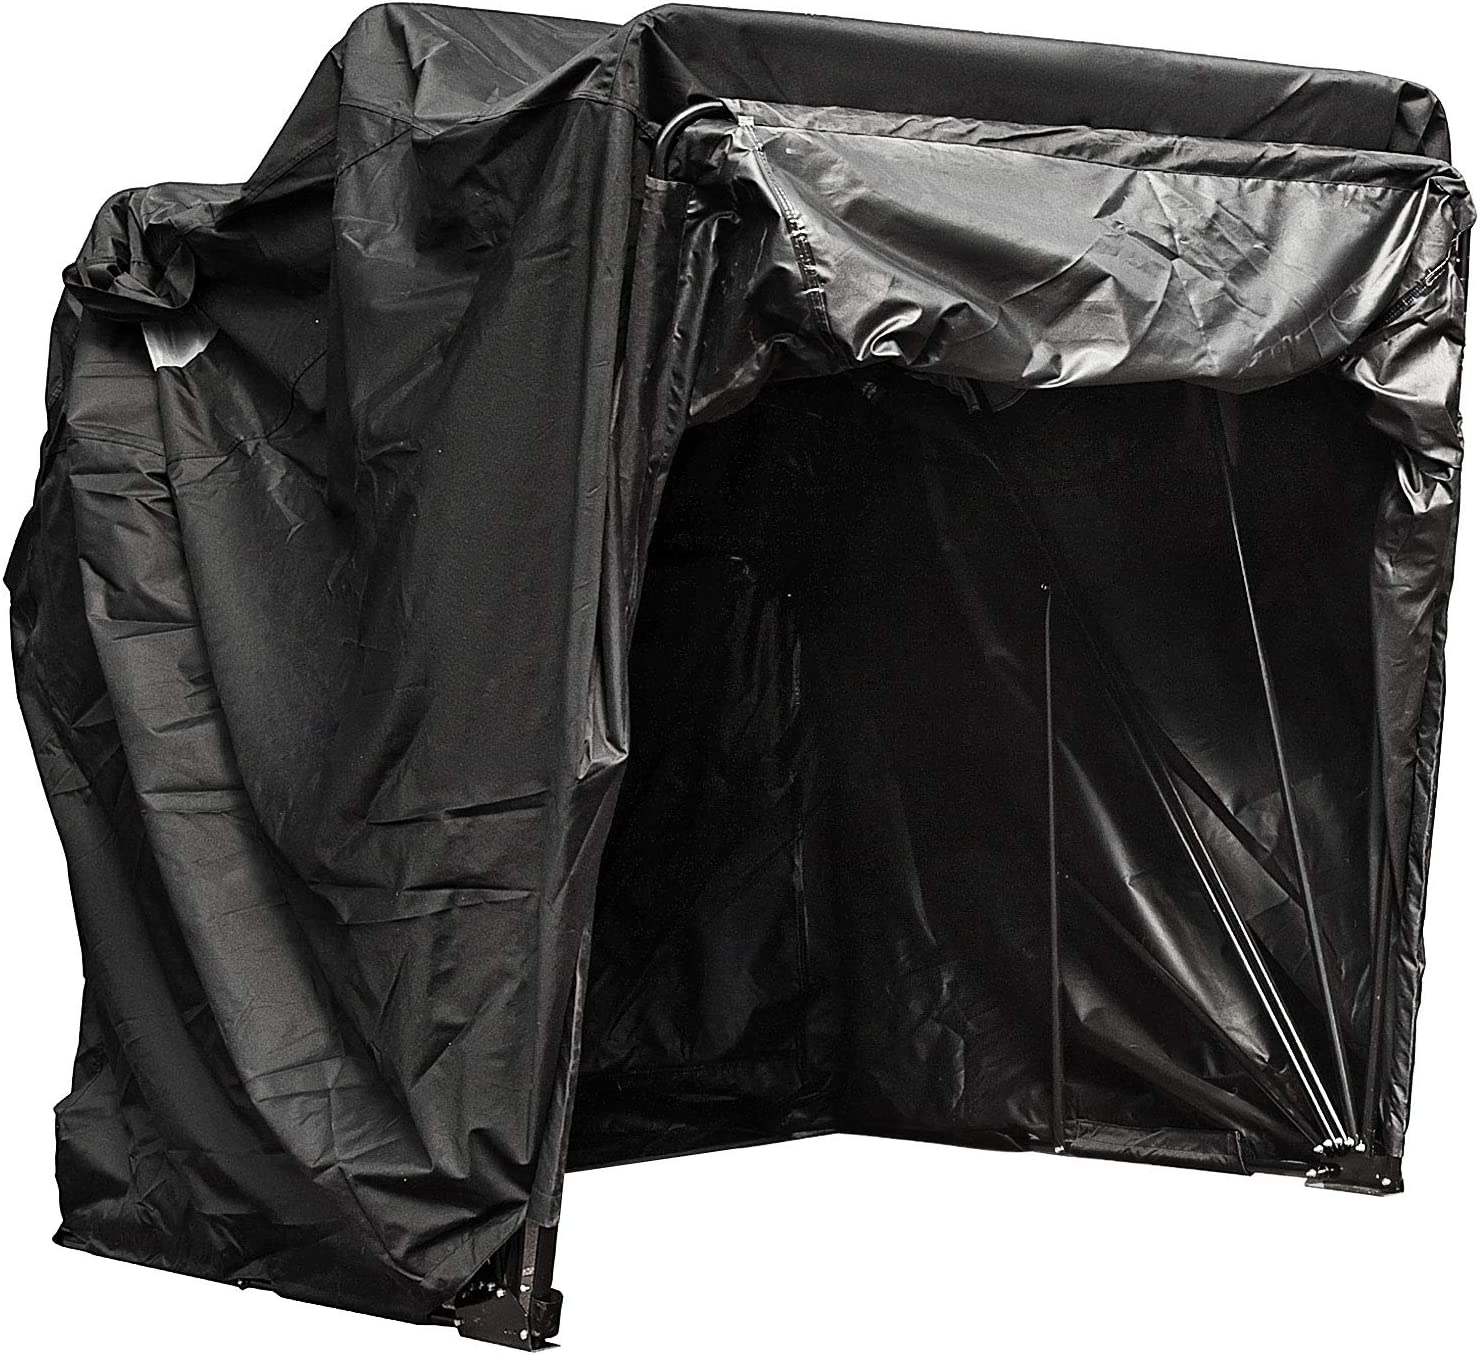 Rain Protect 600D Fabric Ventilation Motorcycle Shelter Cover Anti-UV with Quenched Steel Frame Oxford Carry Bag FlowerW Standard L Size Motorcycle Shelter Mobility Scooter Cover